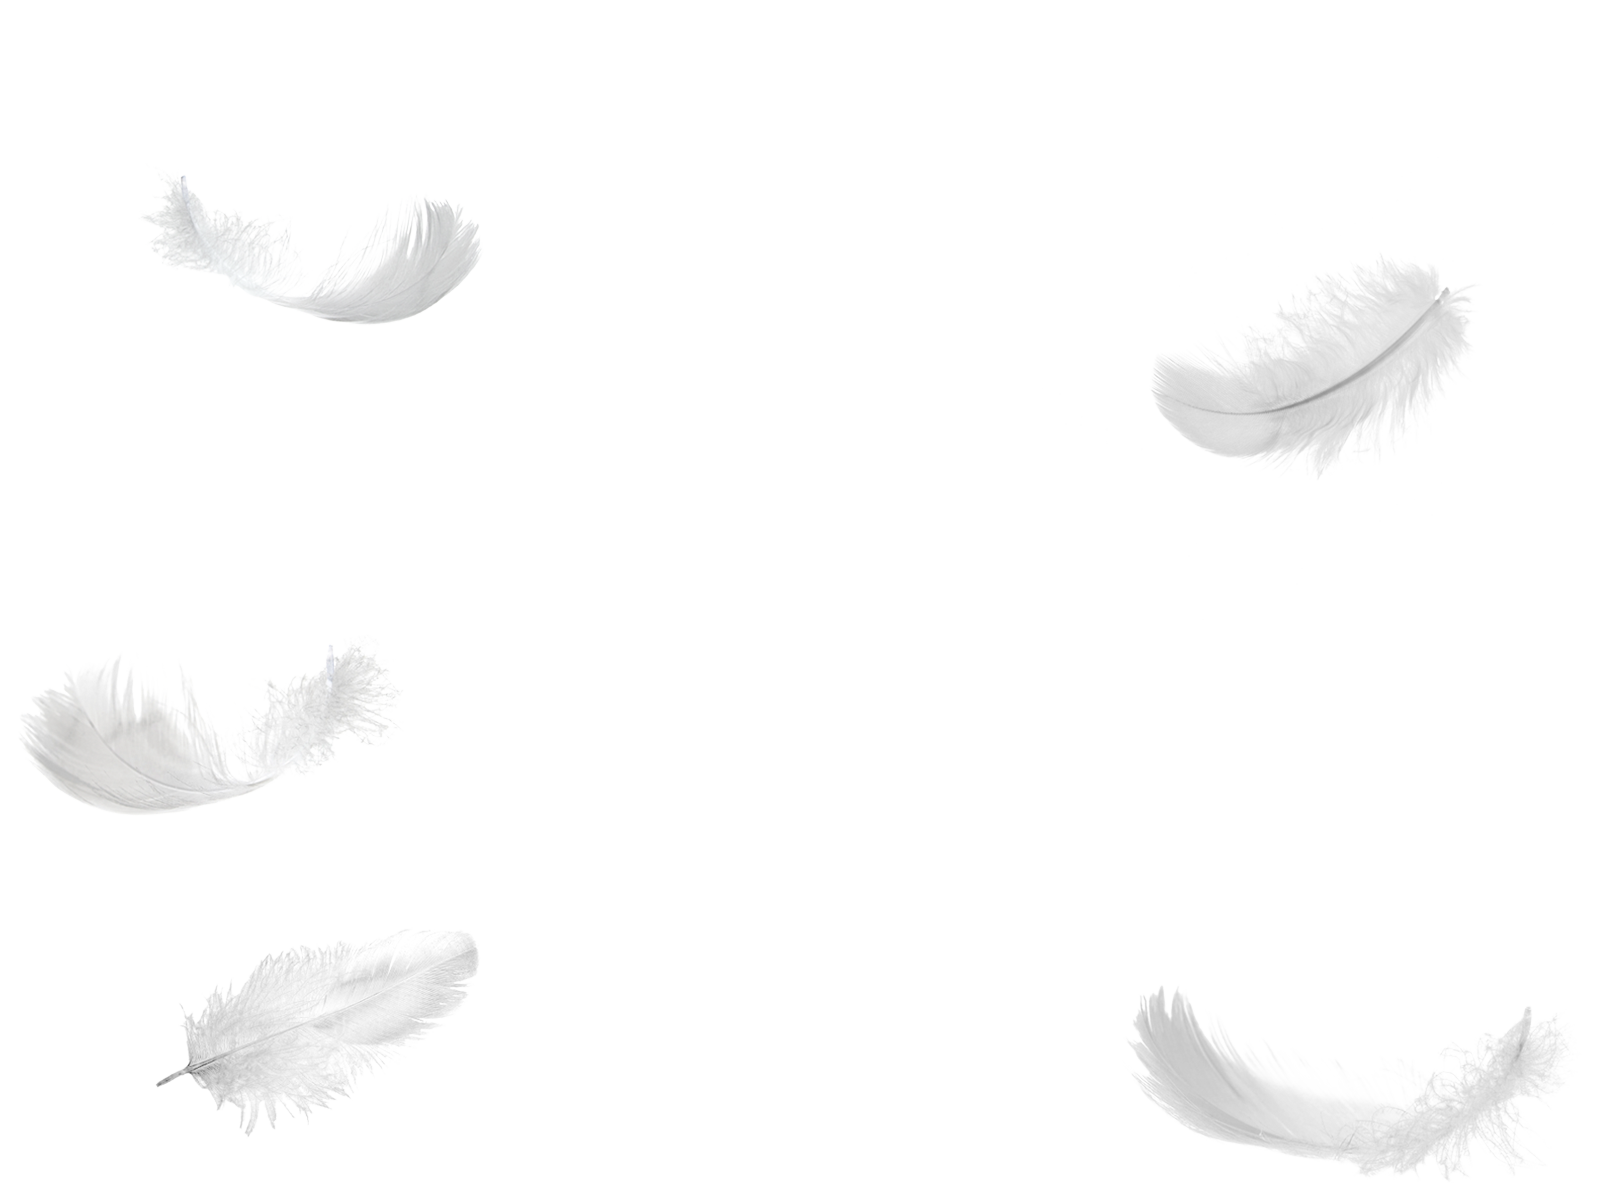 White feathers png. Five falling no background